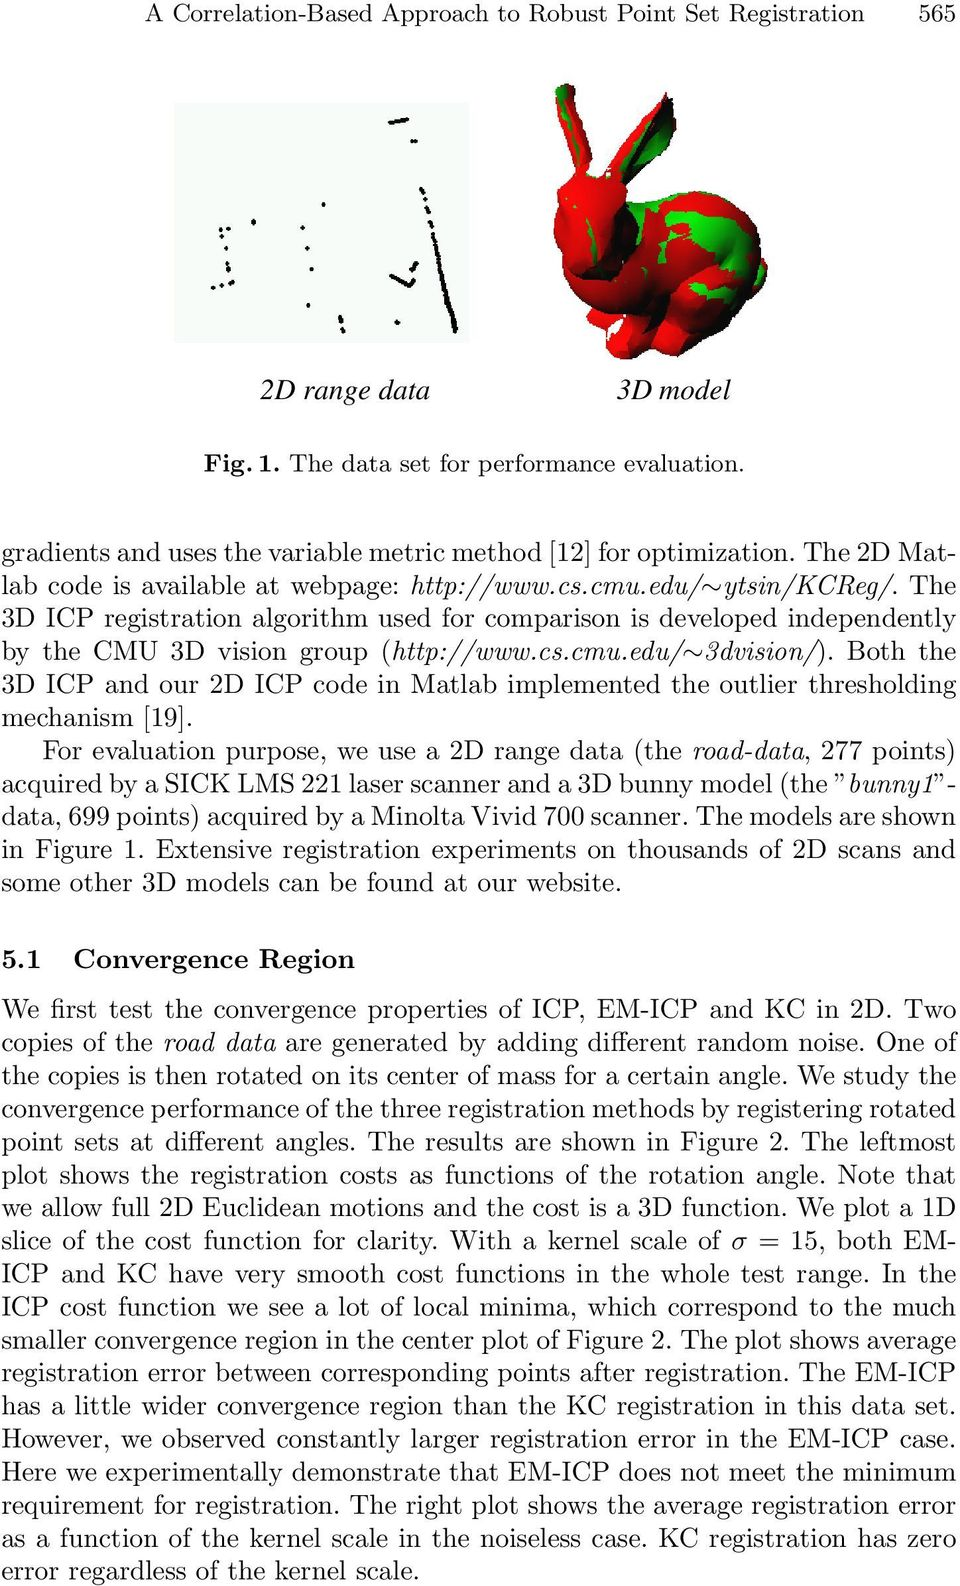 The 3D registration algorithm used for comparison is developed independently by the CMU 3D vision group (http://www.cs.cmu.edu/ 3dvision/).